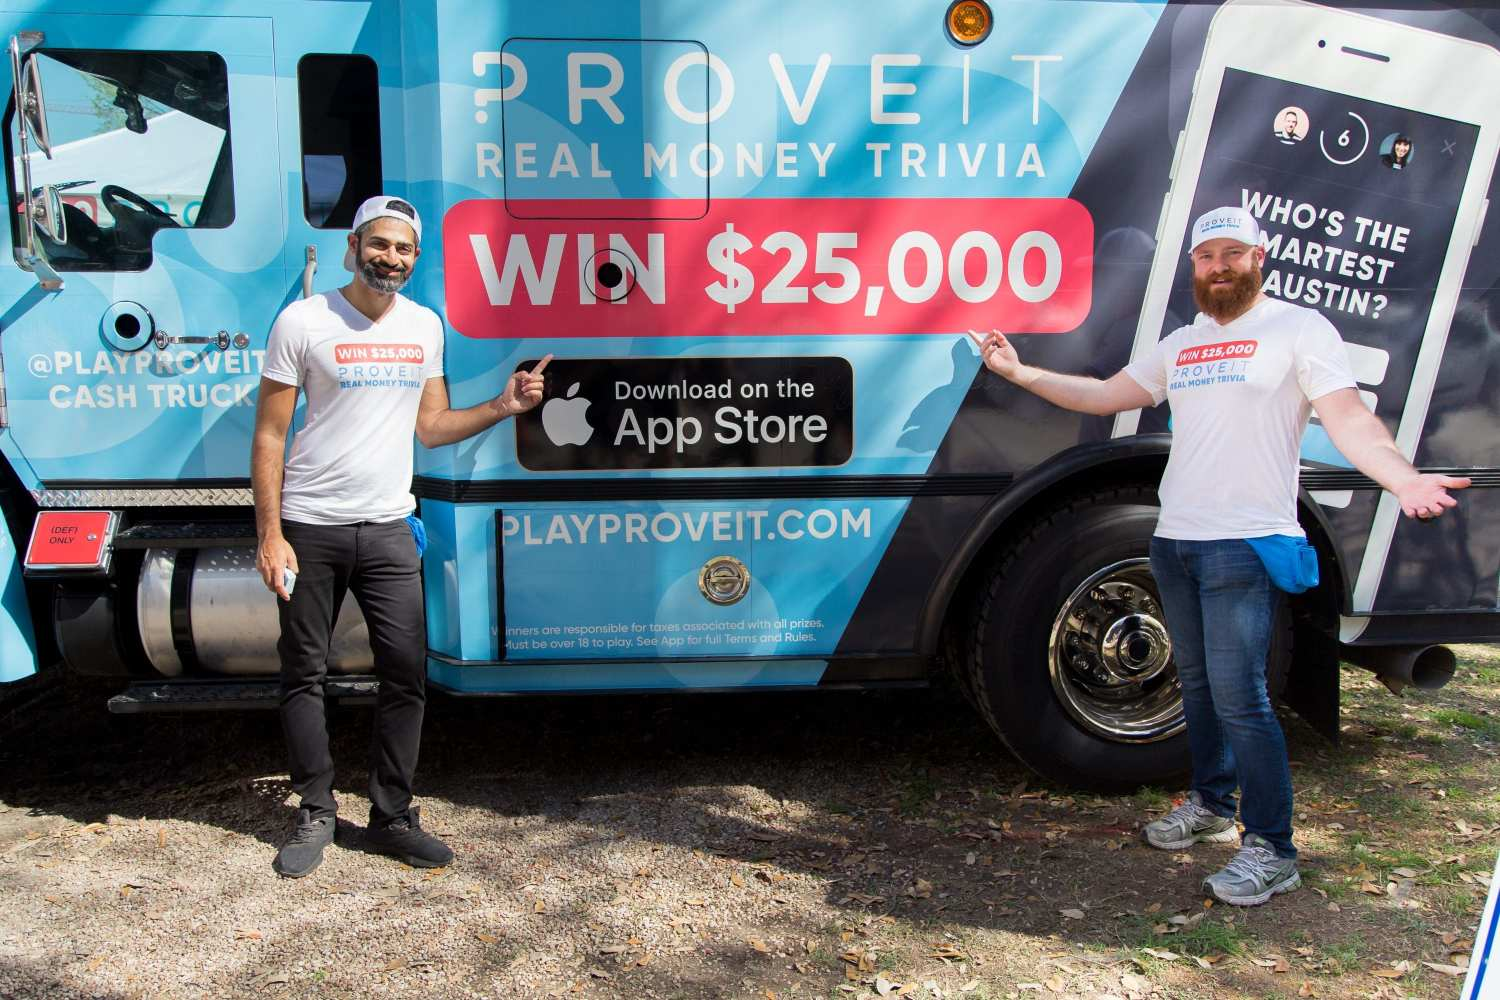 Proveit Founders and Cash Truck